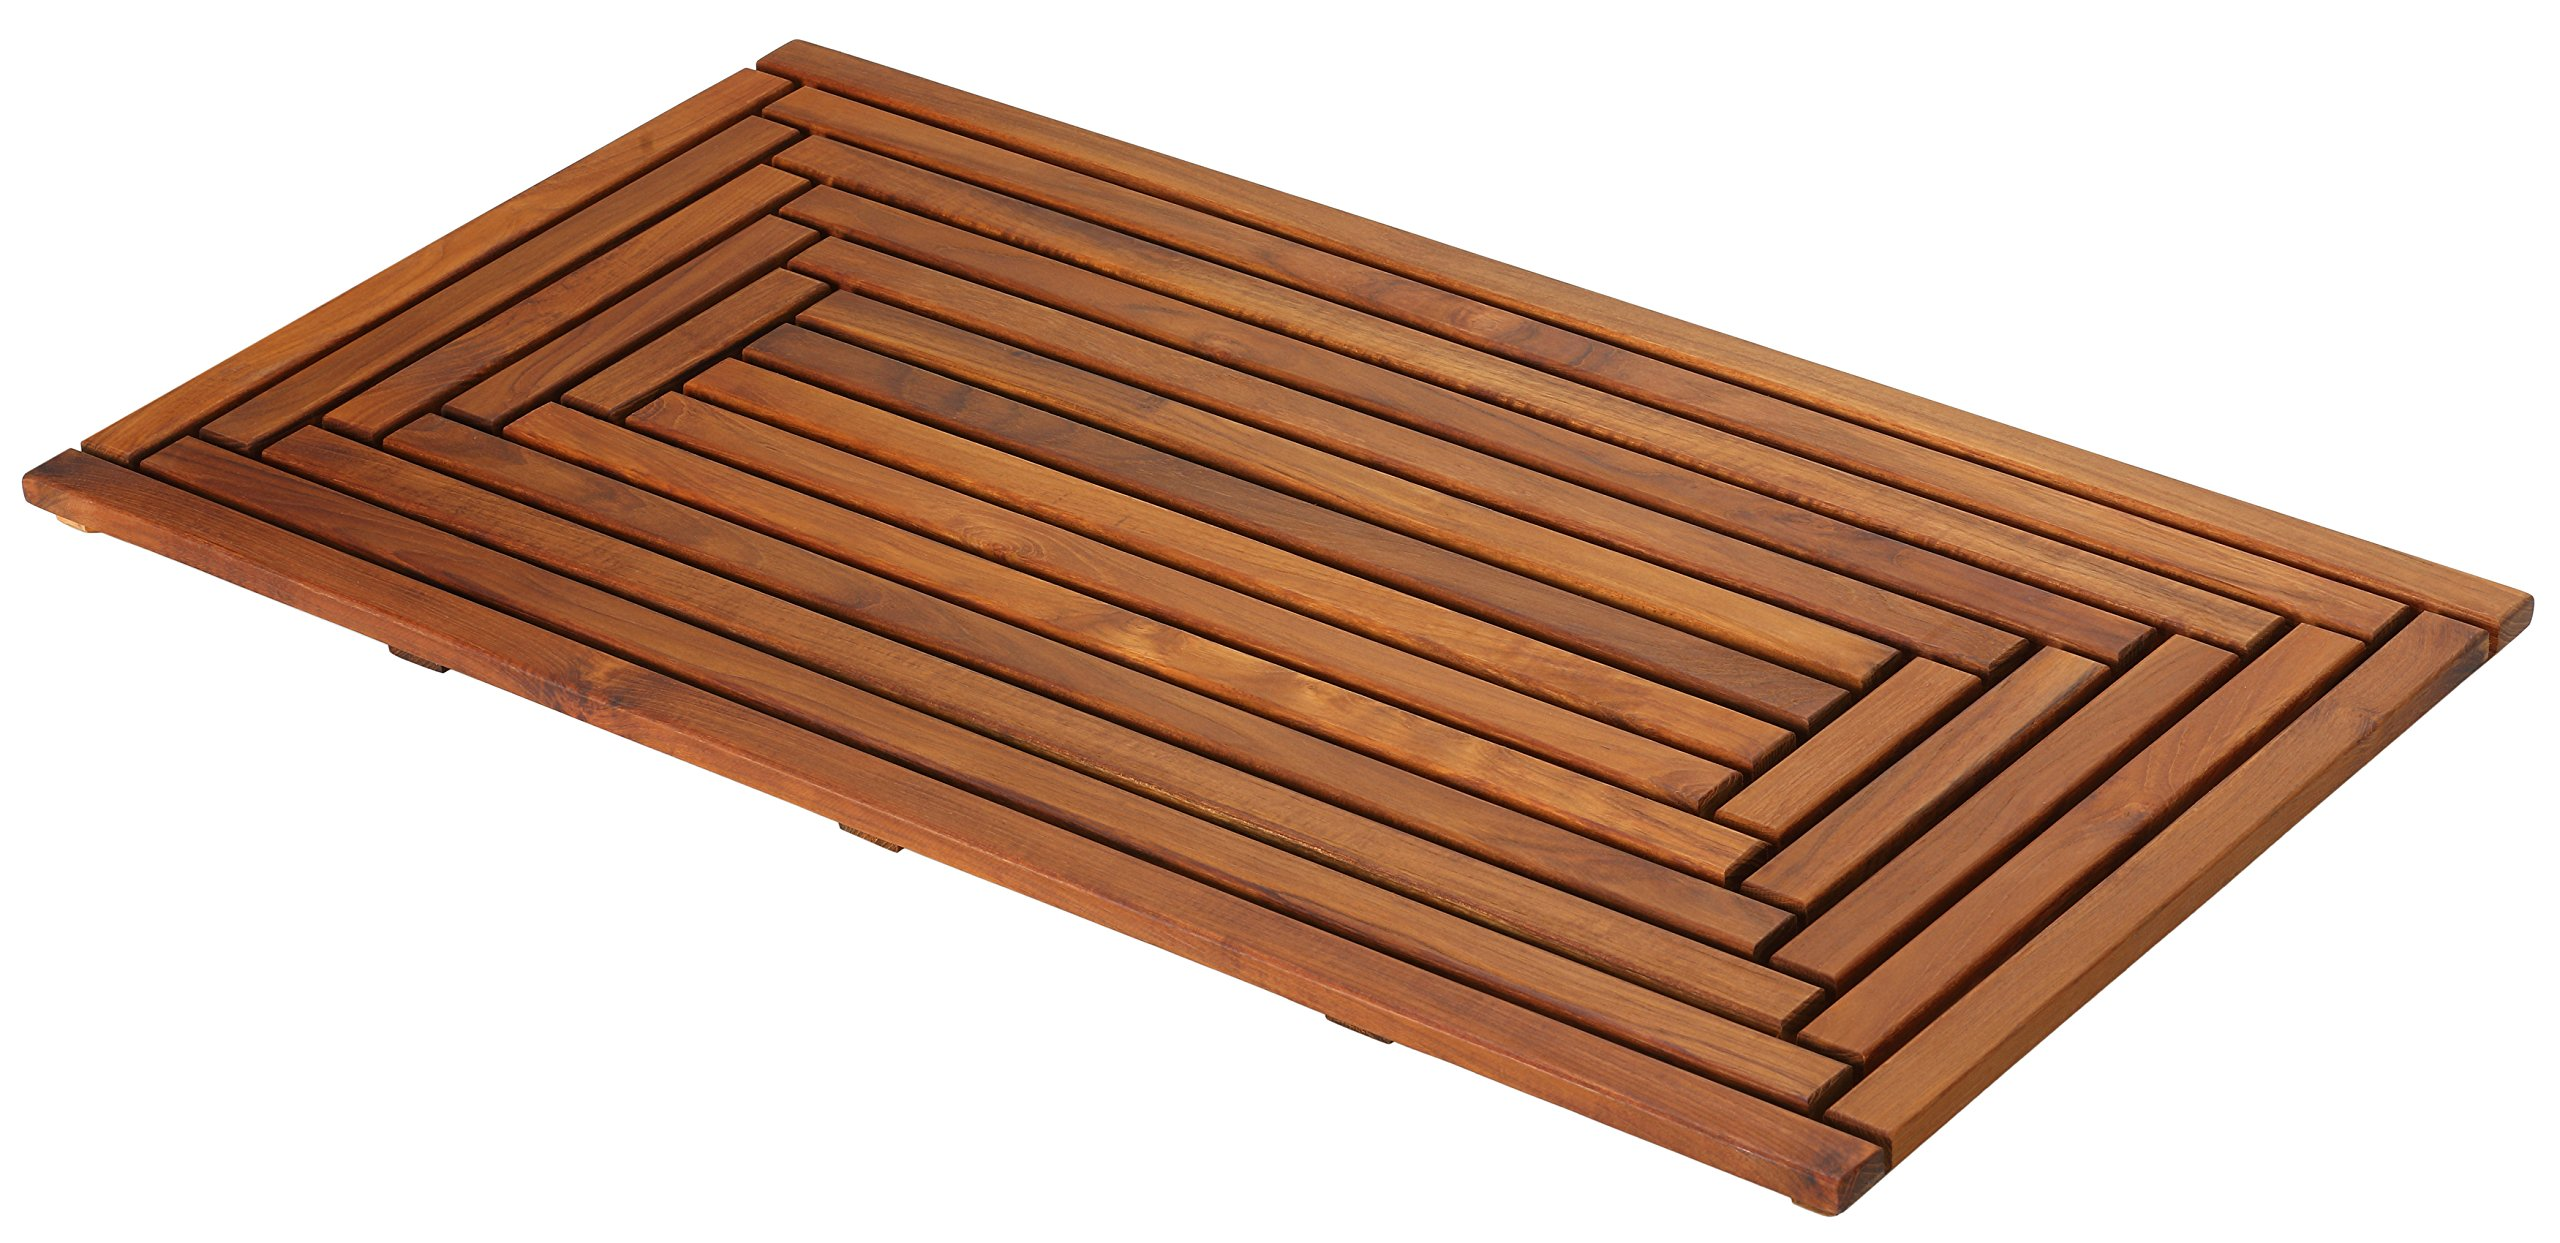 Bare Decor Giza Shower, Spa, Door Mat in Solid Teak Wood and Oiled Finish 35.5'' x 19.75'' by Bare Decor (Image #2)